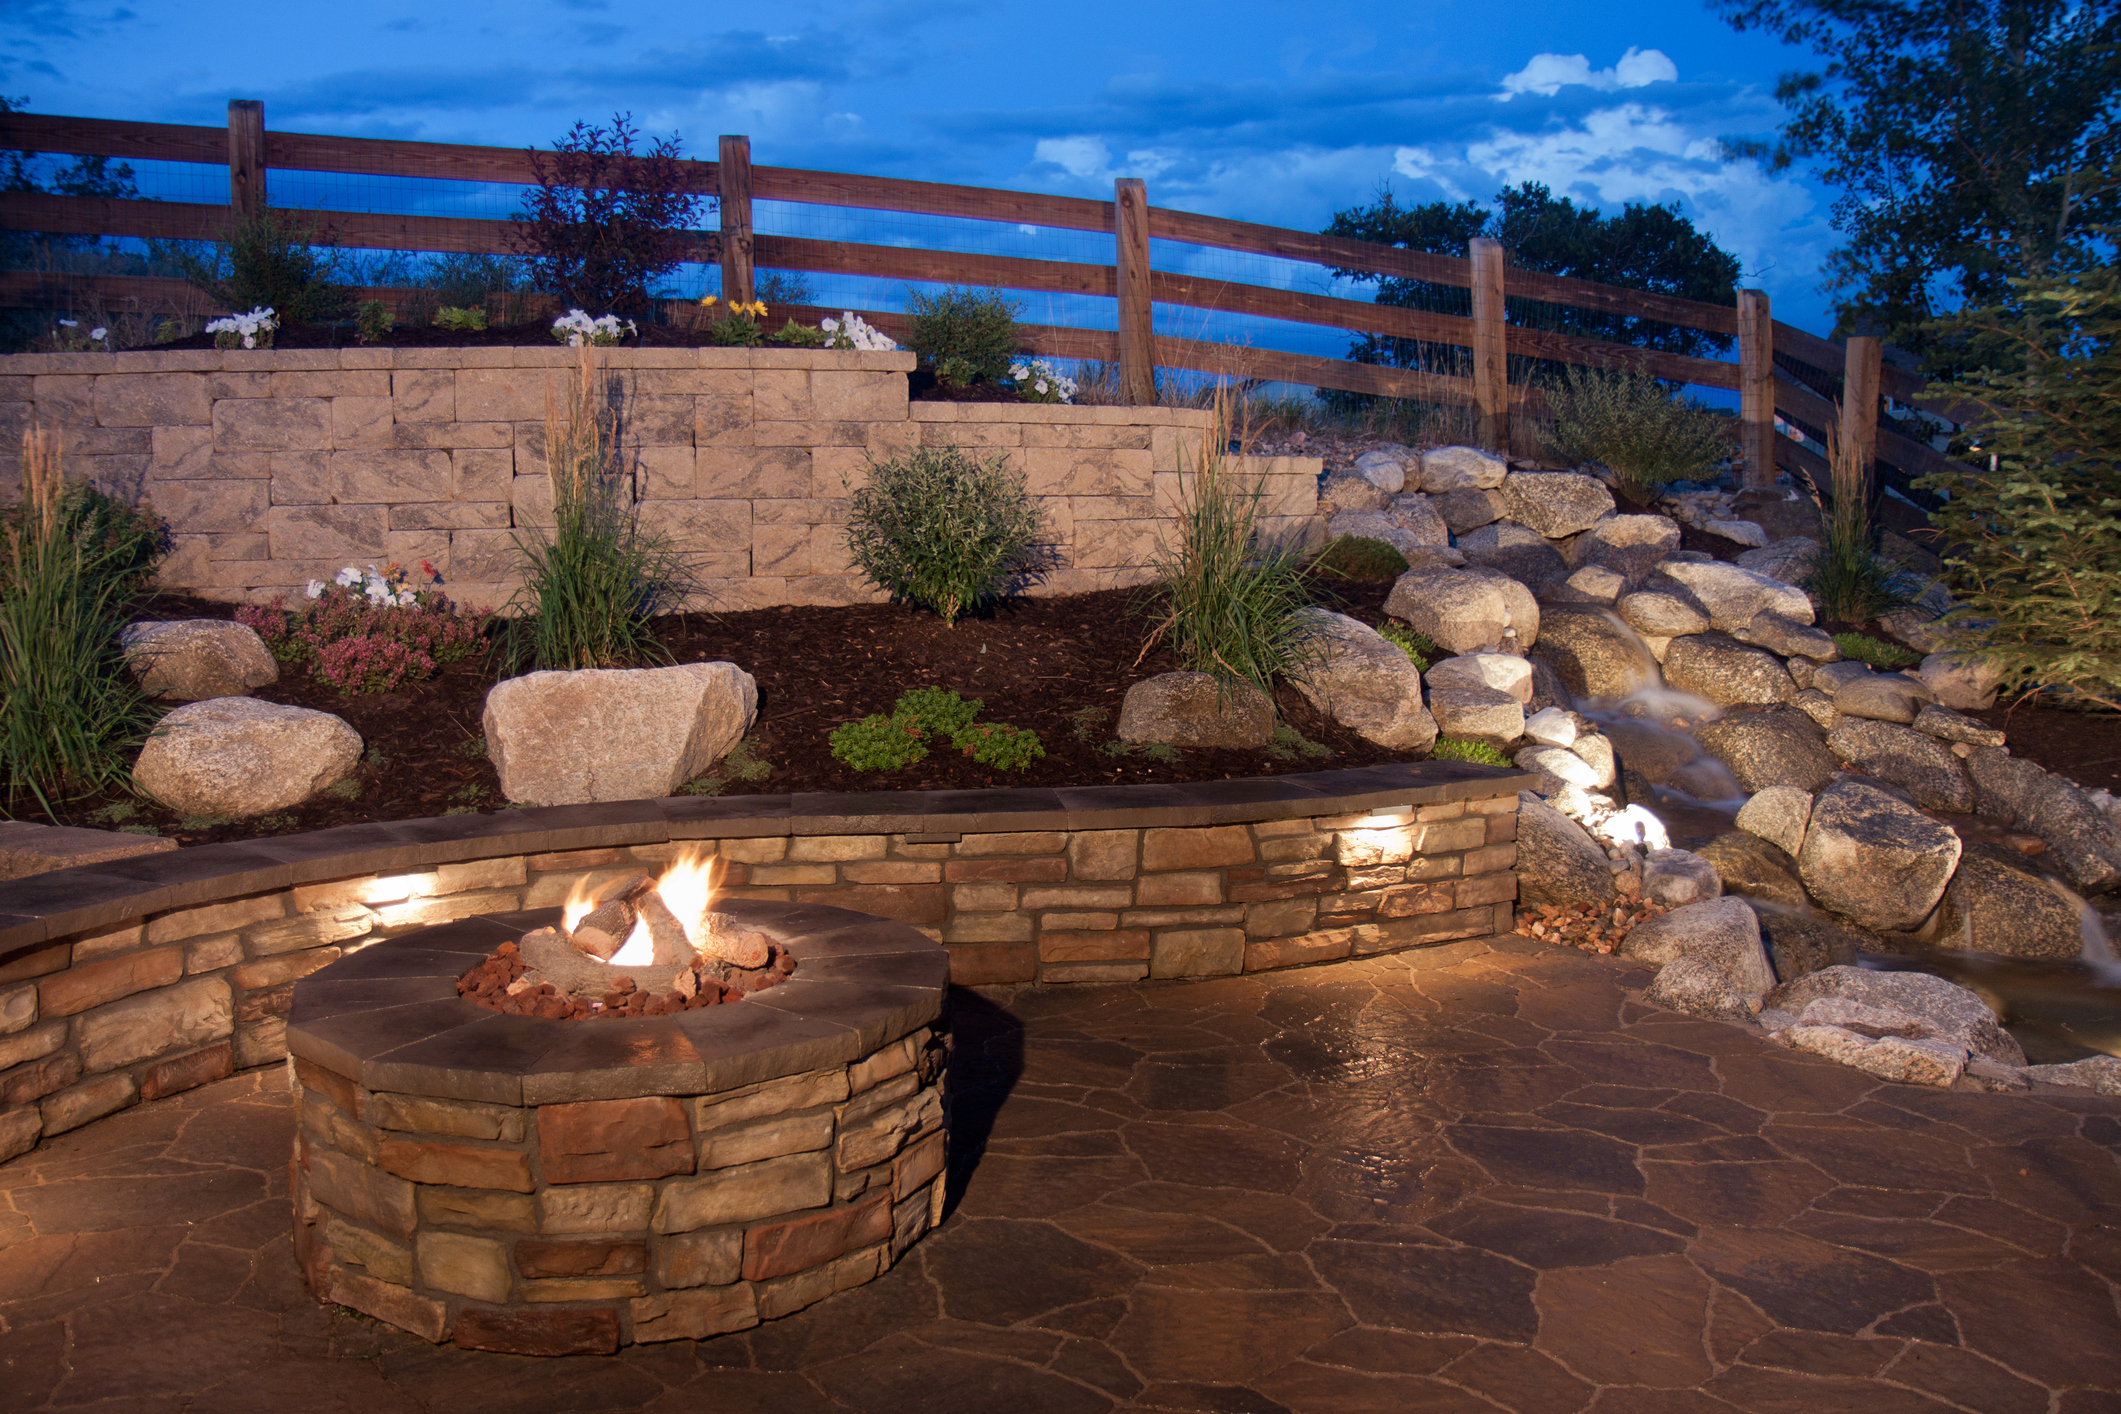 Landscape Lighting - Landscape lighting can create a cozy or modern ambiance with the simplicity of installing a few small lights either under a ledge or in a garden bed. You can give your backyard an elevated appeal with this simple and elegant touch.